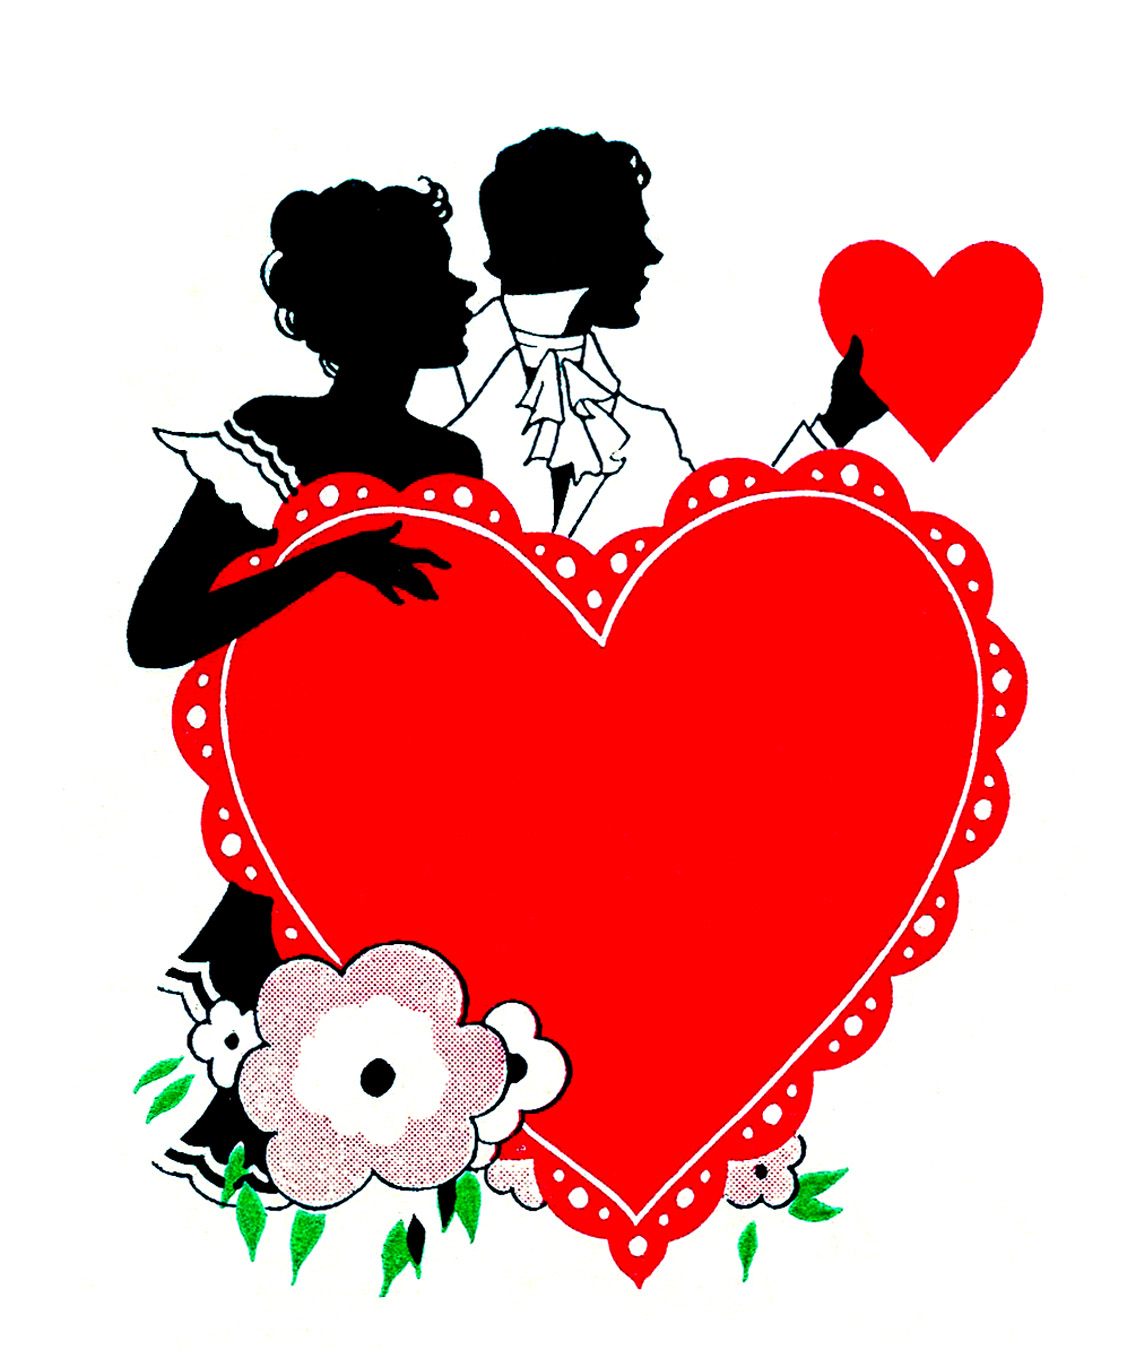 Romantic cliparts download clip. Free christian valentines day clipart